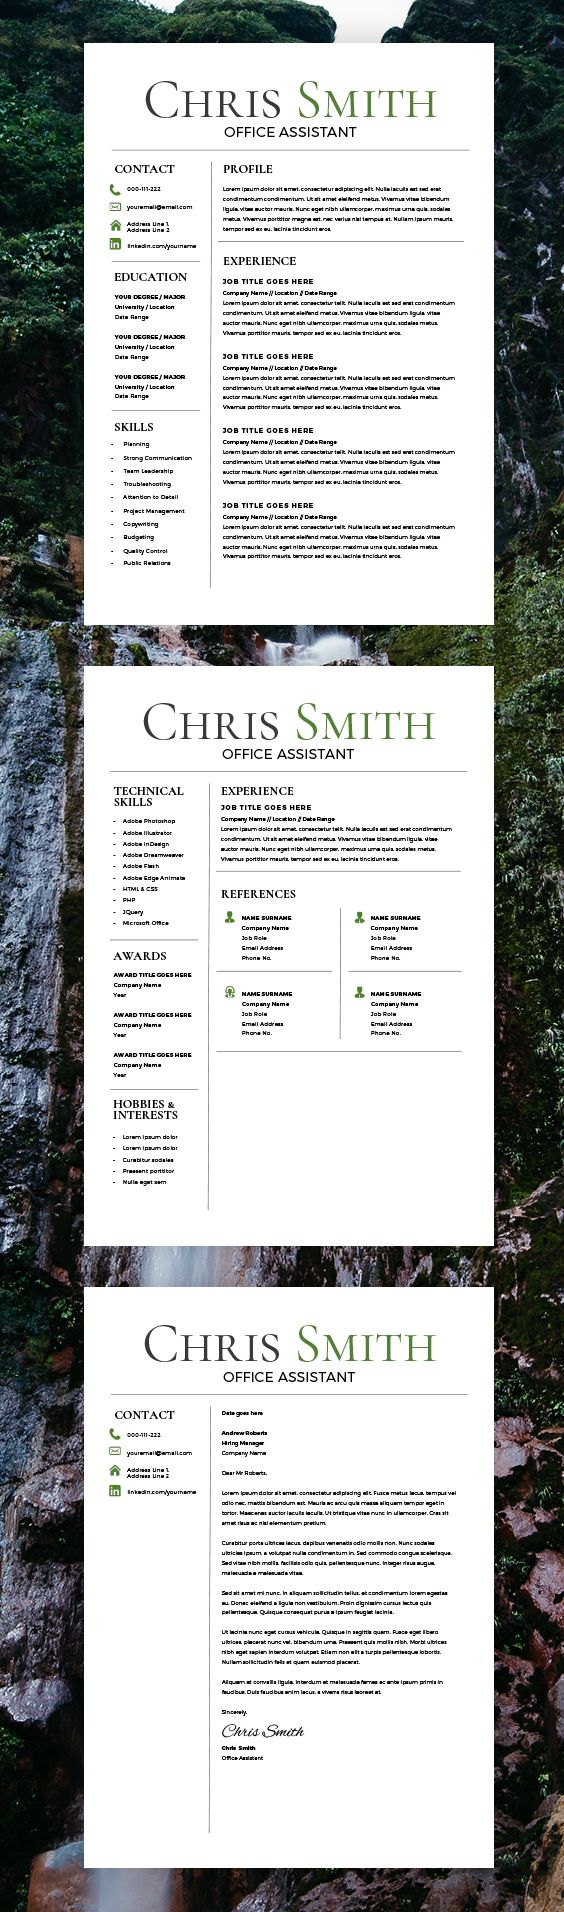 Resume for Marketing Resume for Sales